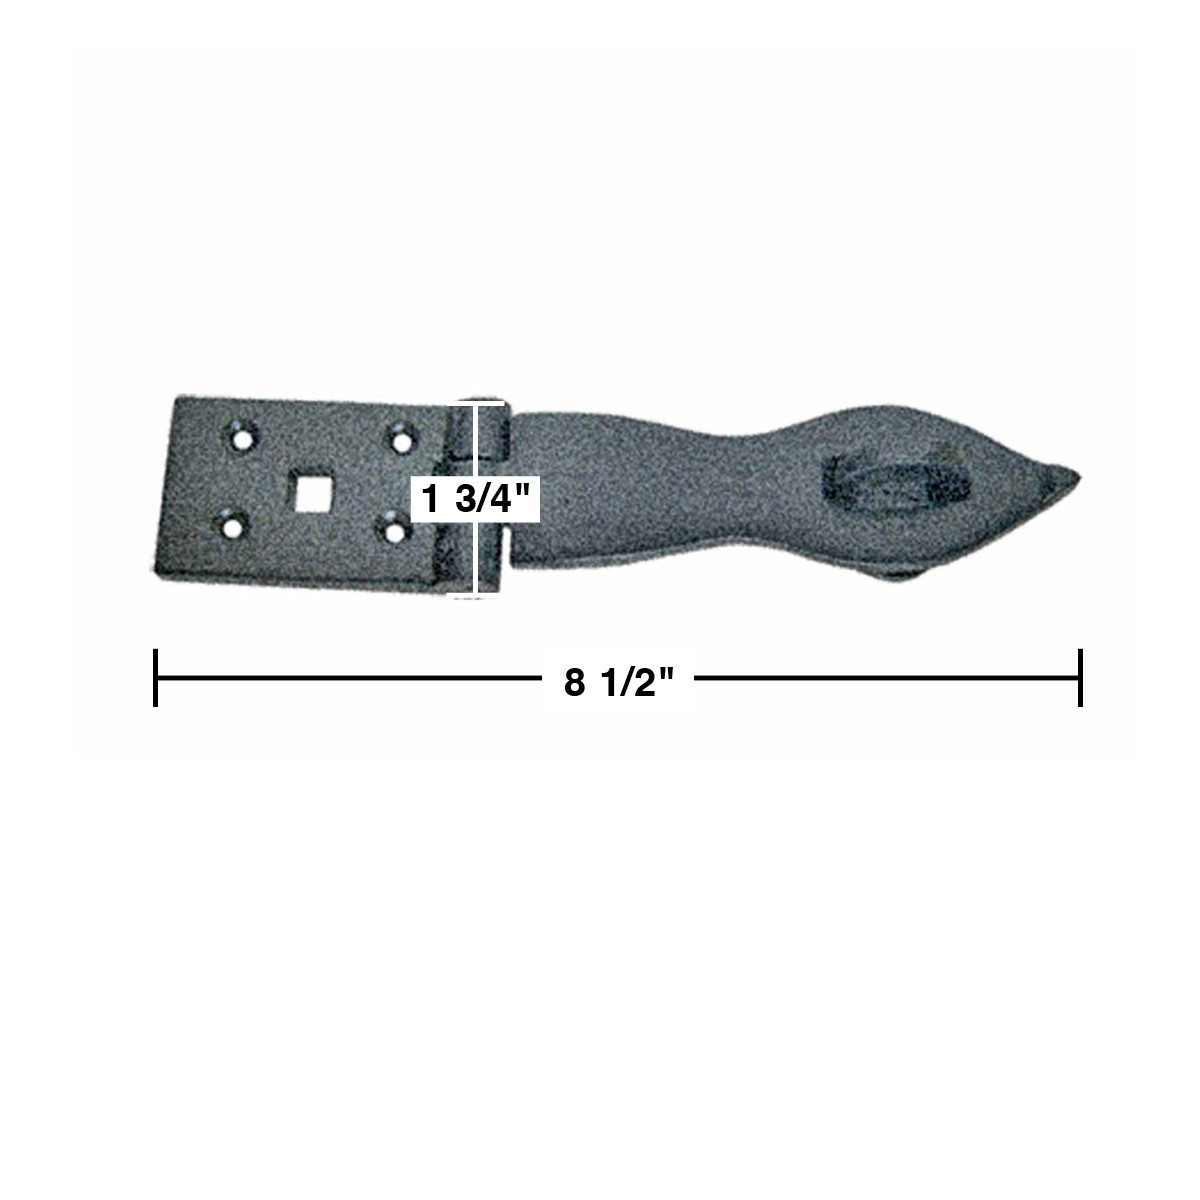 Hasp Black Wrought Iron 1 3/4 H x 8 1/2 W | Renovators Supply 3